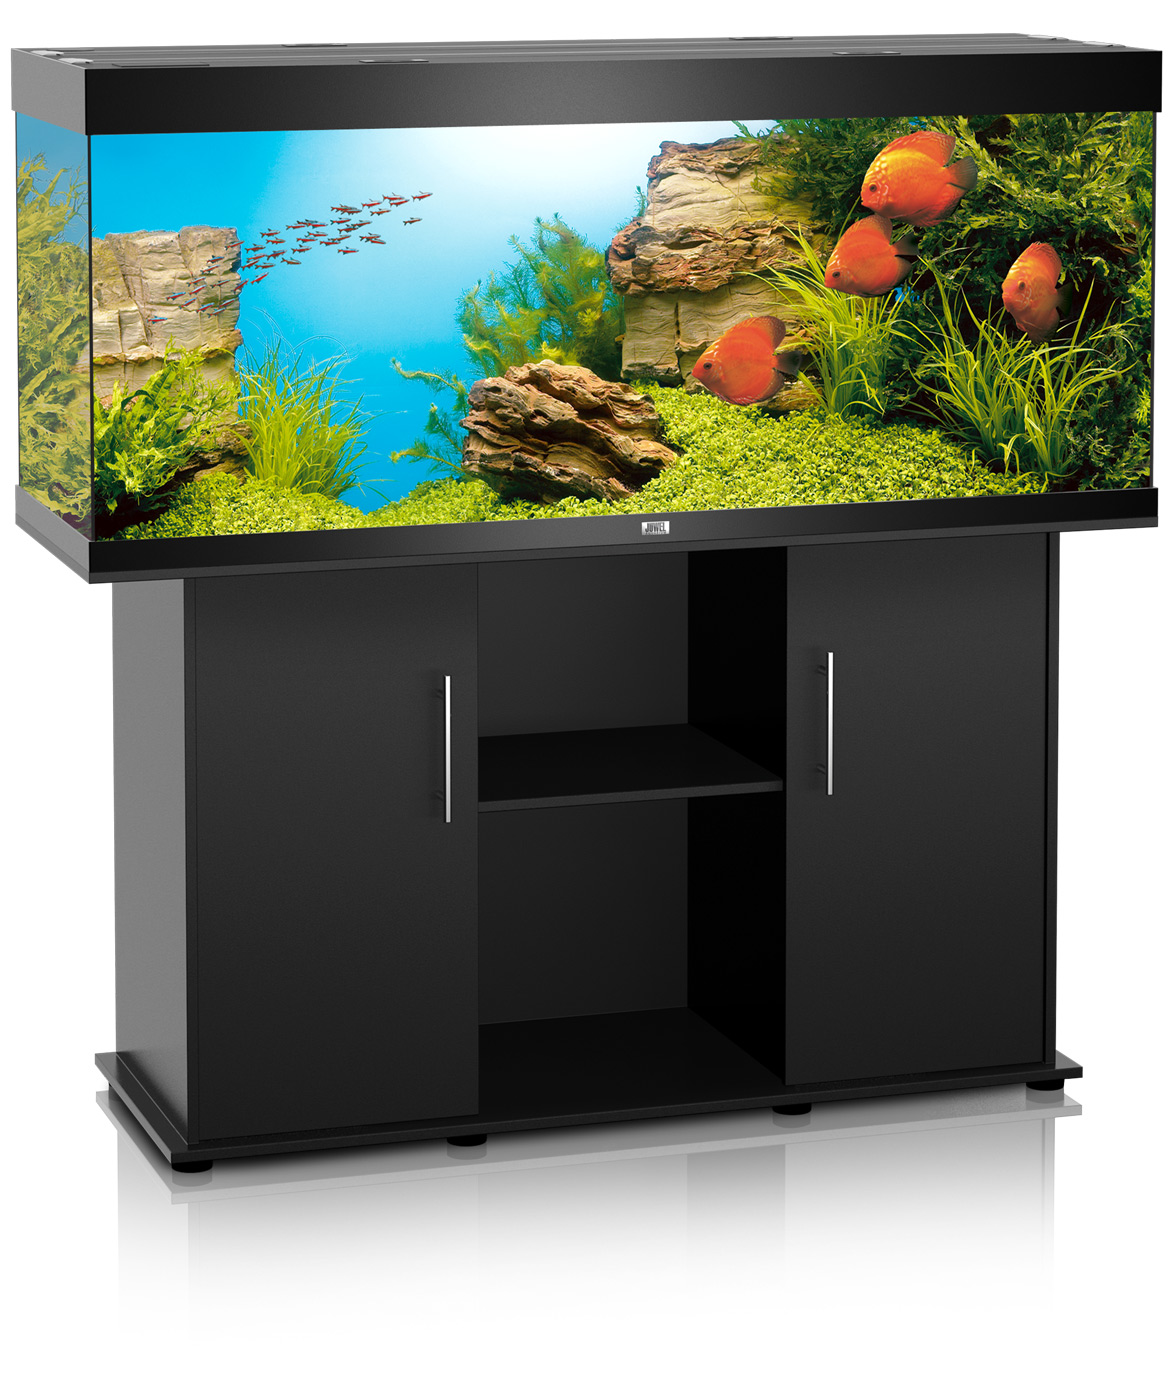 juwel rio 400 aquarium and cabinet. Black Bedroom Furniture Sets. Home Design Ideas